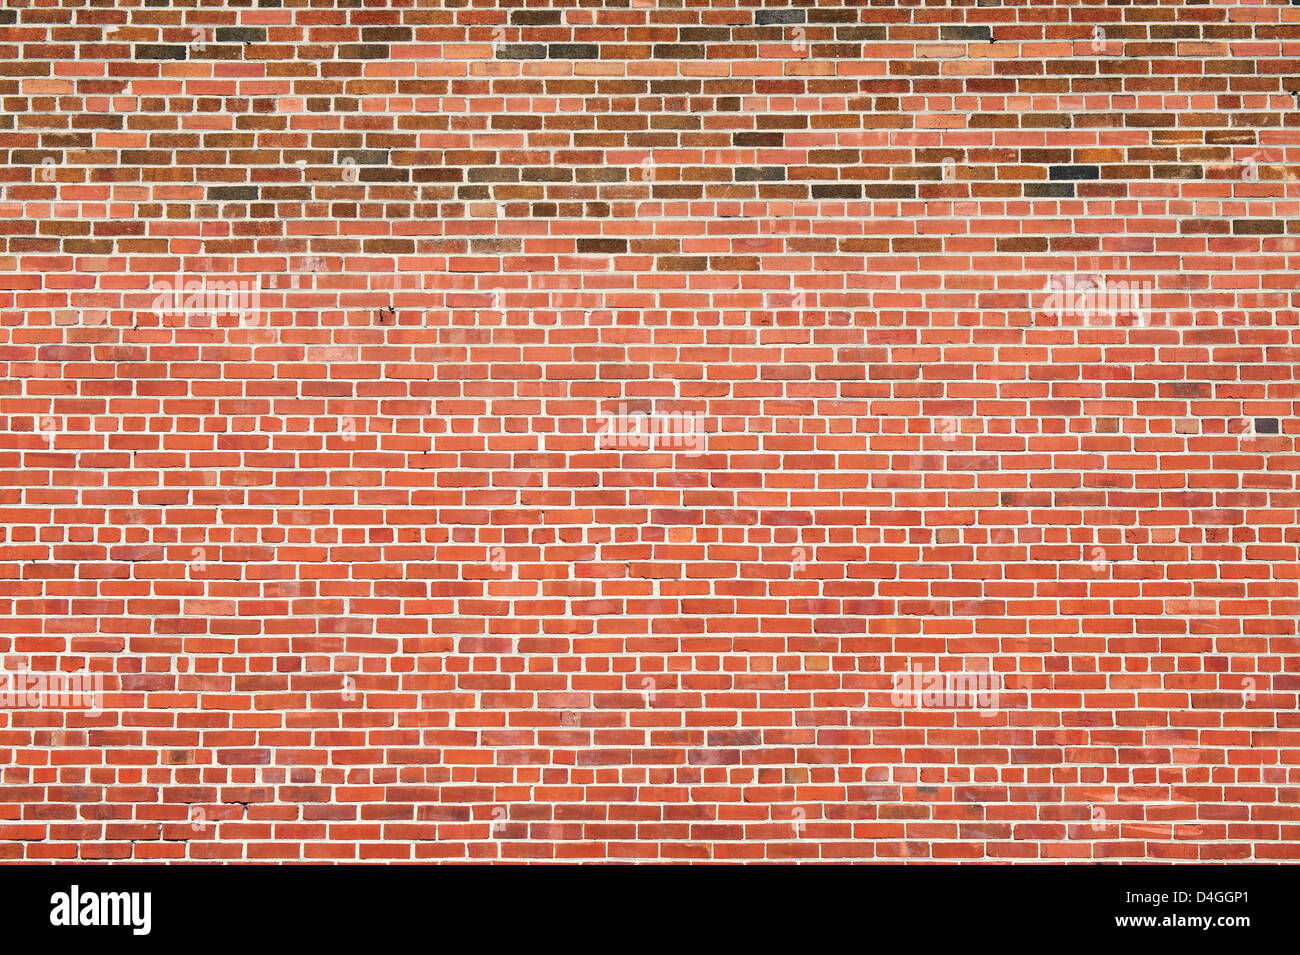 Red brick wall. - Stock Image